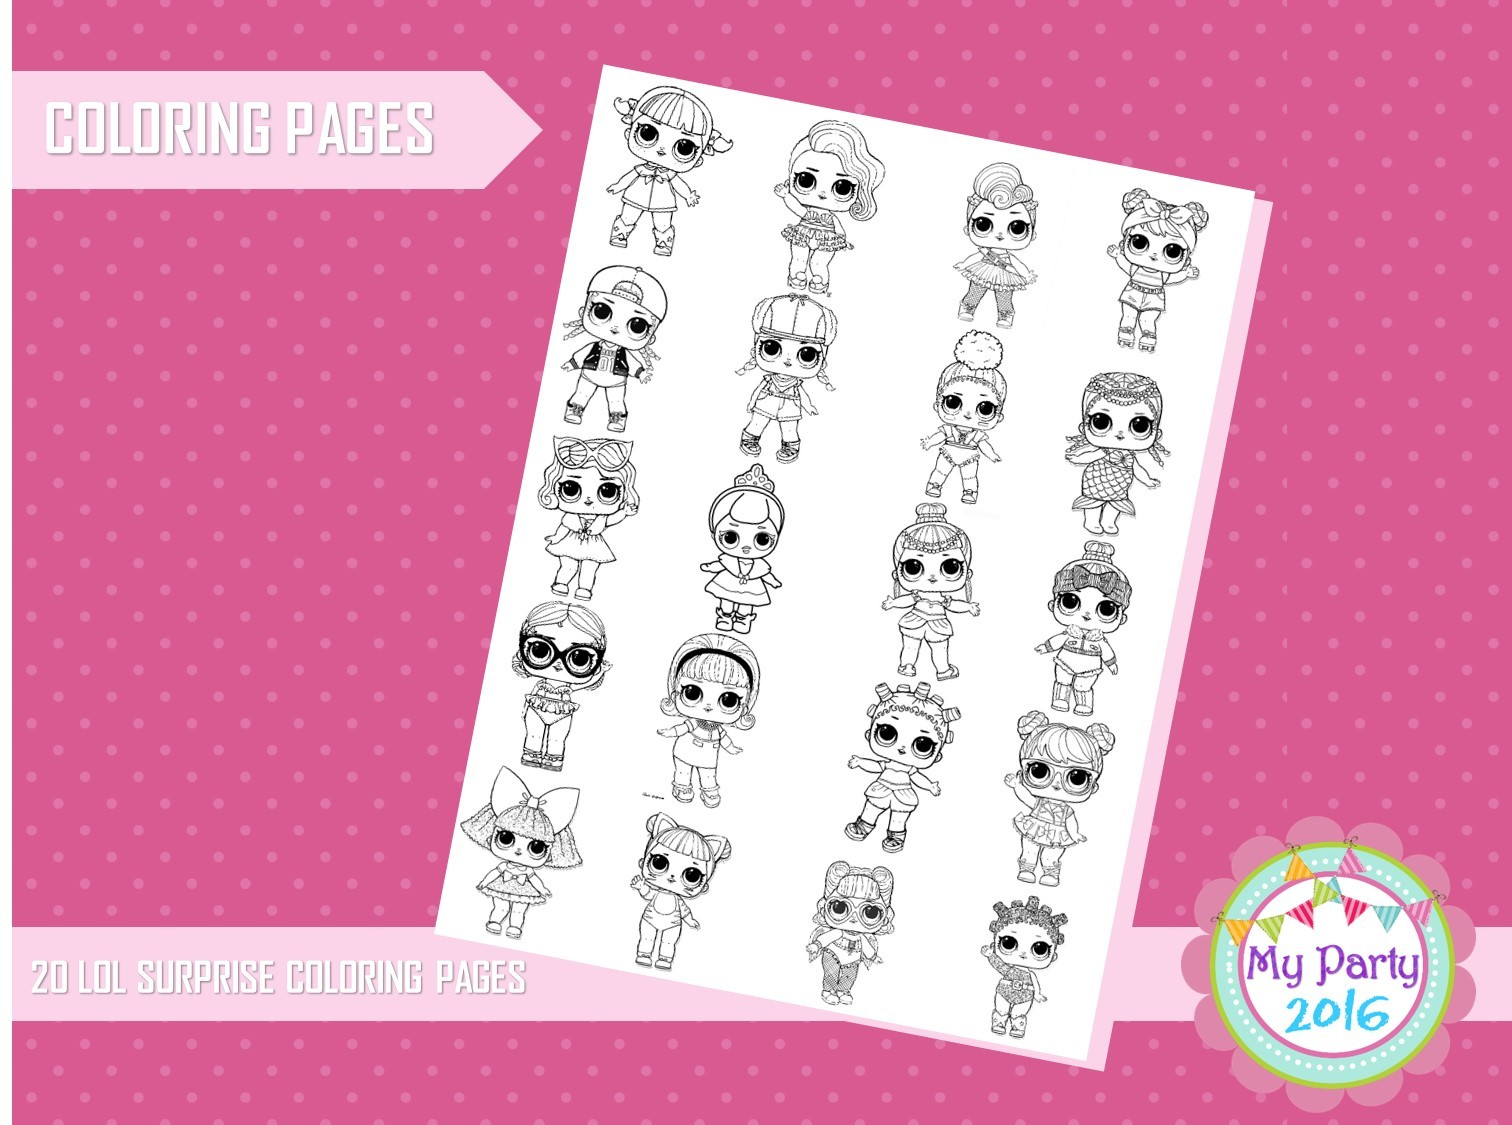 Lol Dolls Surprise Coloring Pages - Printable by MyParty2016 on Zibbet